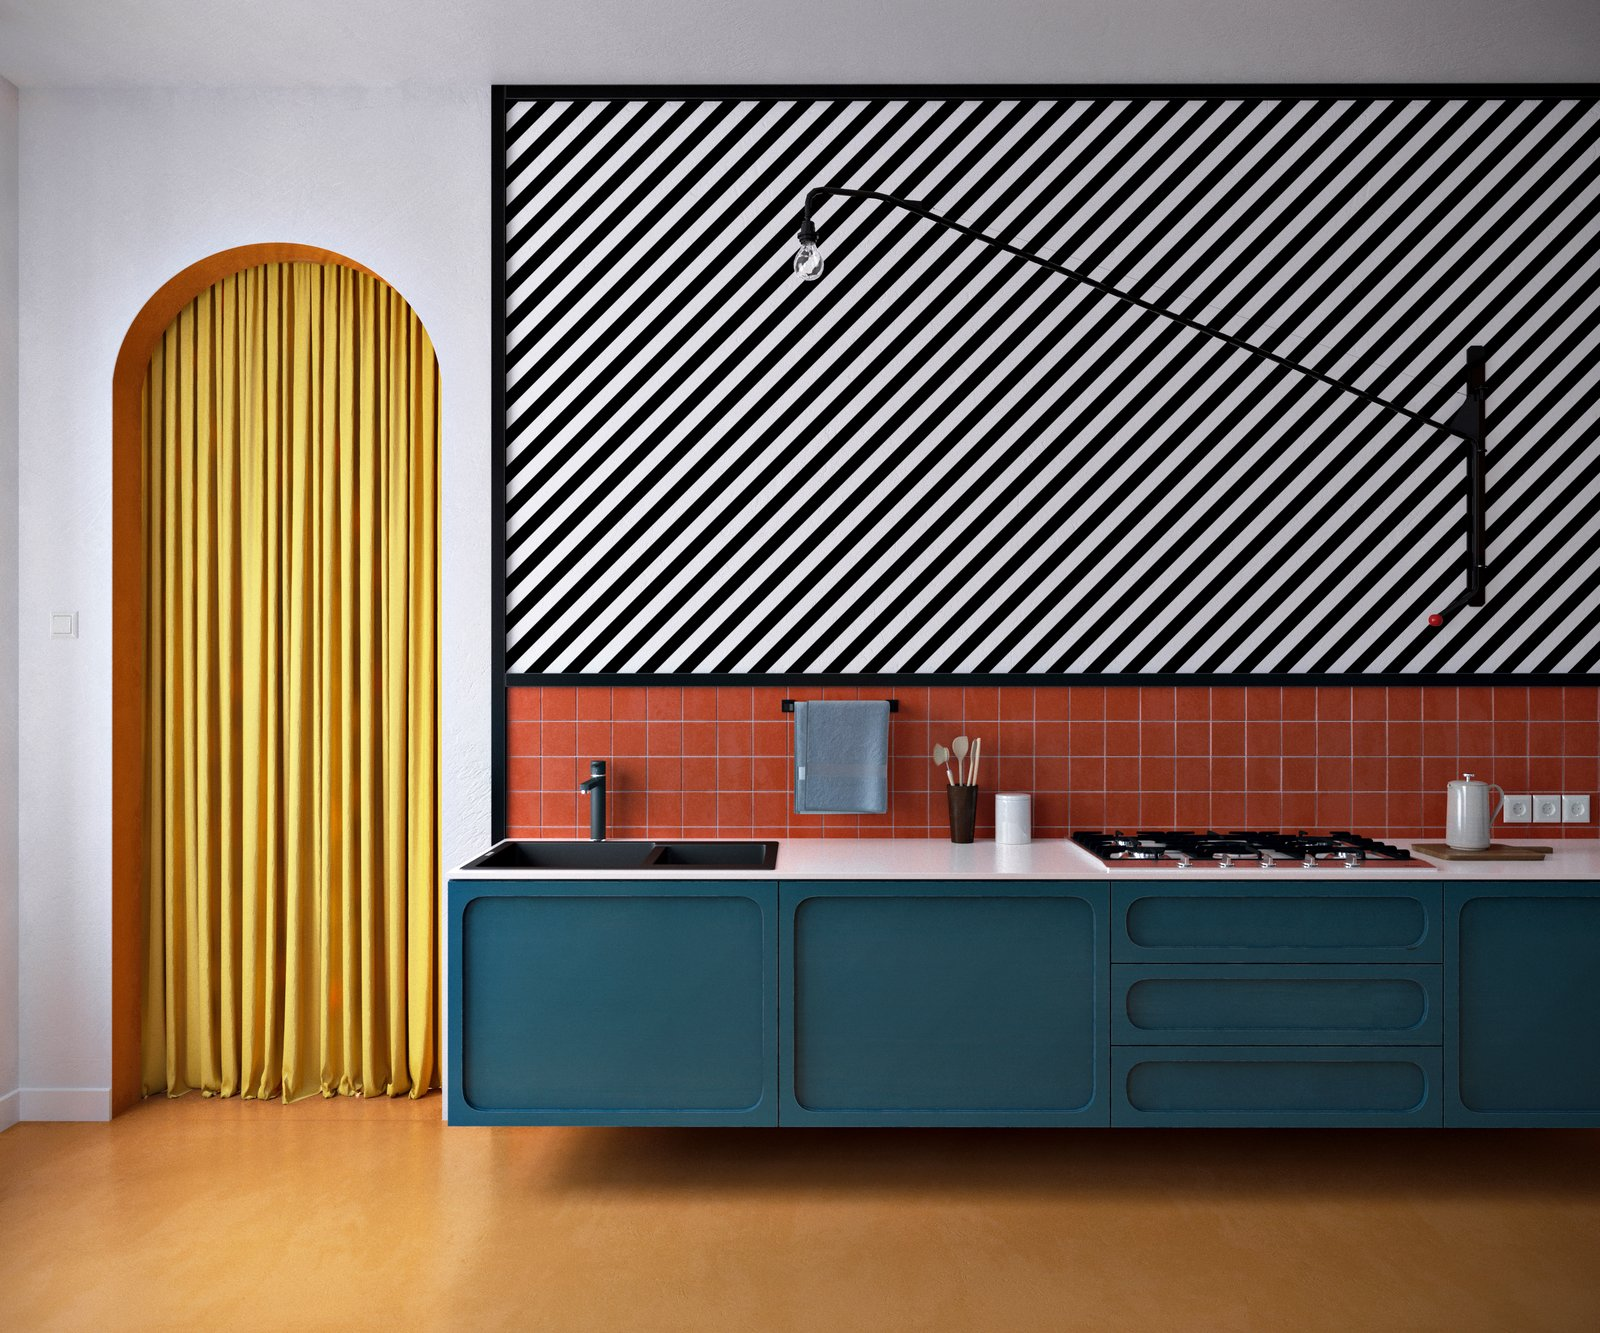 Bright Colors Meet Bold Patterns in This Compact Oslo Abode